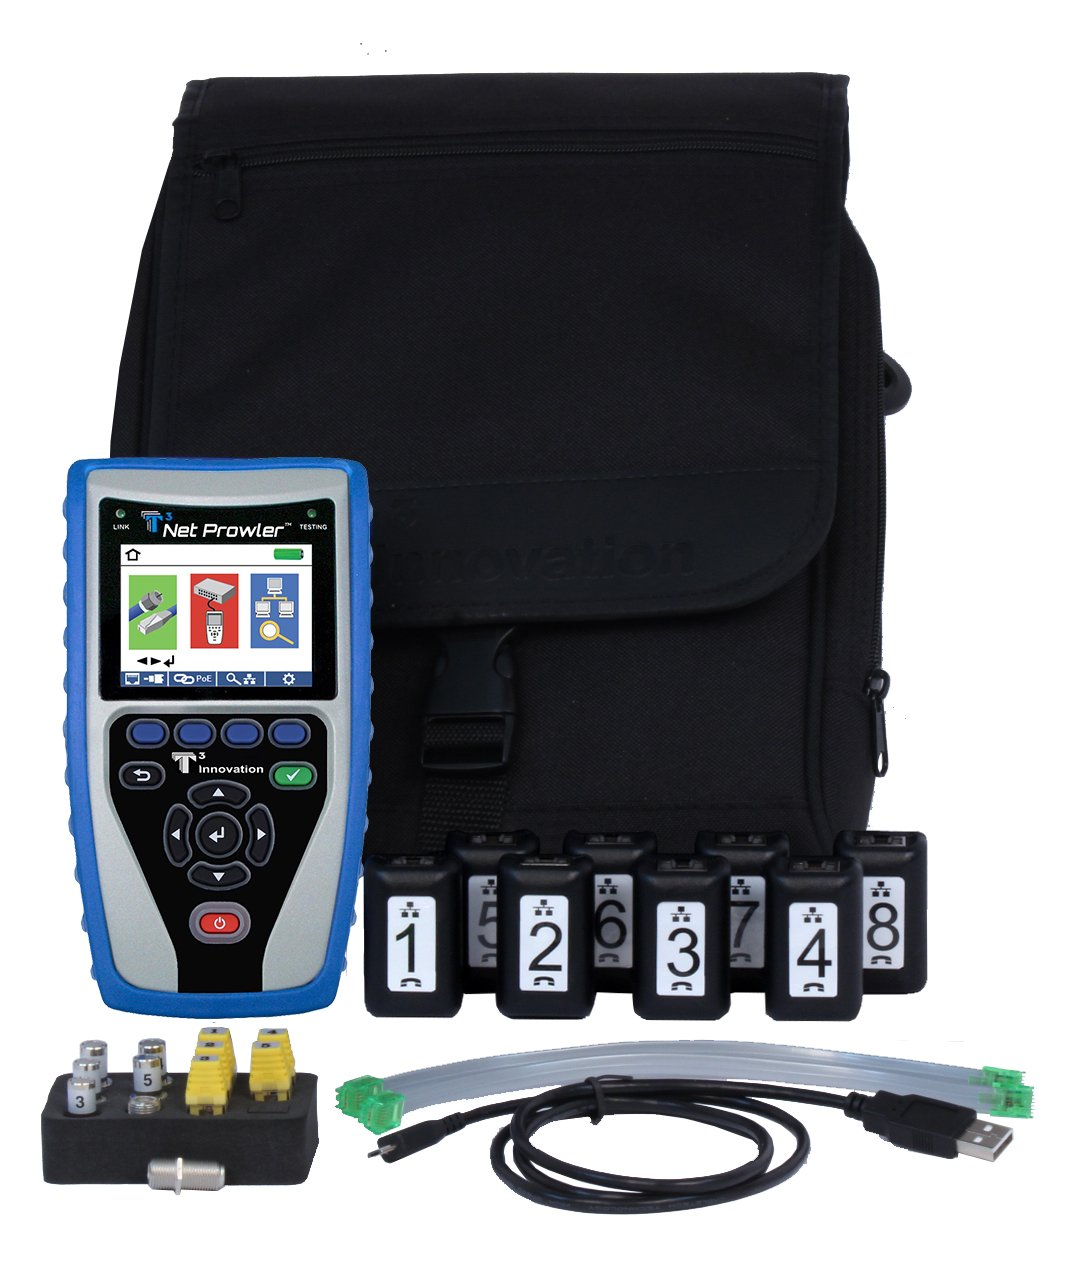 Best Network Cable Tester Reviews Top 10 Report In January 2019 Lan 10base Bnc Rg45 And Rj11 Etc Circuit Testers T3 Innovation Np750 Net Prowler Cabling Advanced